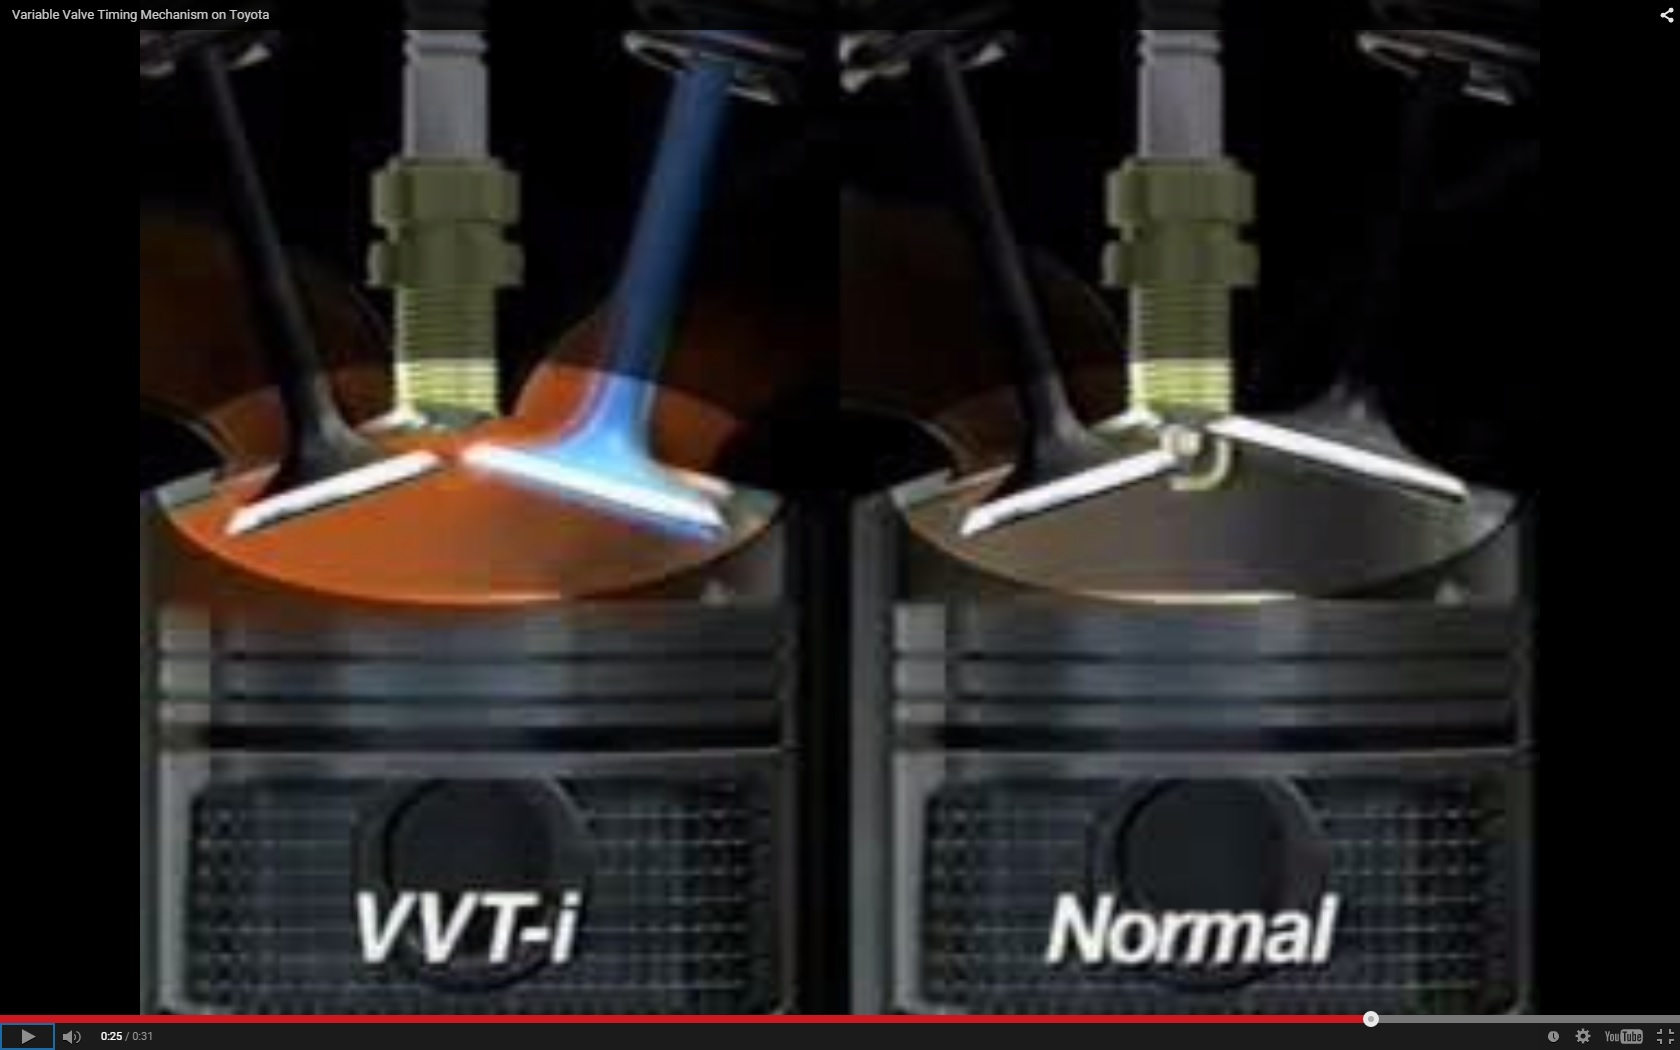 And a honda engineer came up with a solution or as we all know it better i vtec